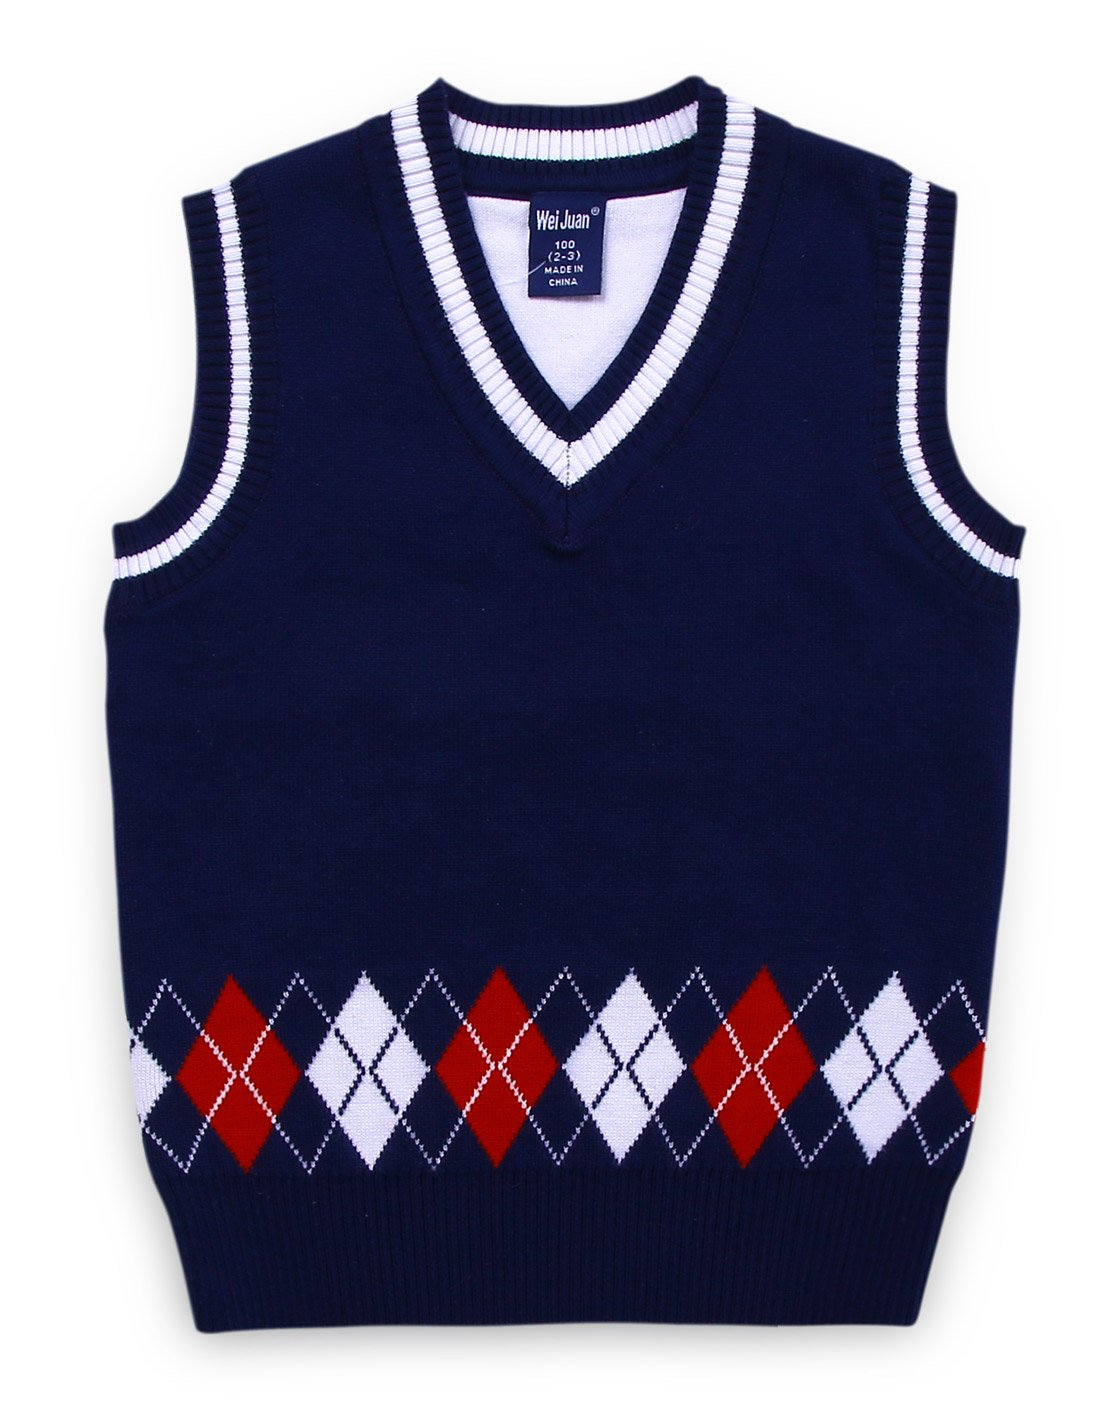 Little Boys Sweater Vest Comfortable Knit Pullover Sleeveless All Season Casual V Neck Wasitcoat 3-4T Navy Blue by Wei Juan